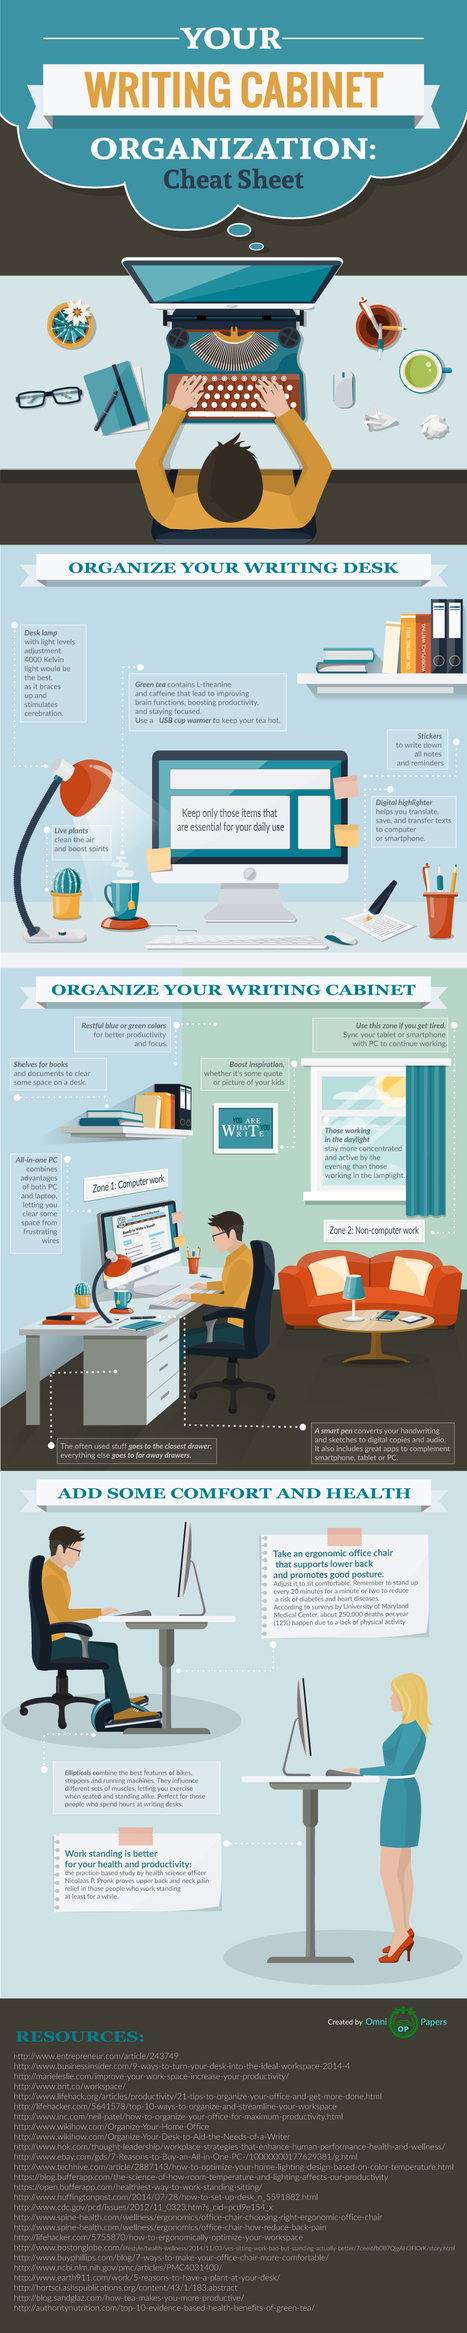 Ways to Organize Your Home Writing Cabinet (Infographic) — Omnipapers.com | All Things Bookish: All about books, all the time | Scoop.it